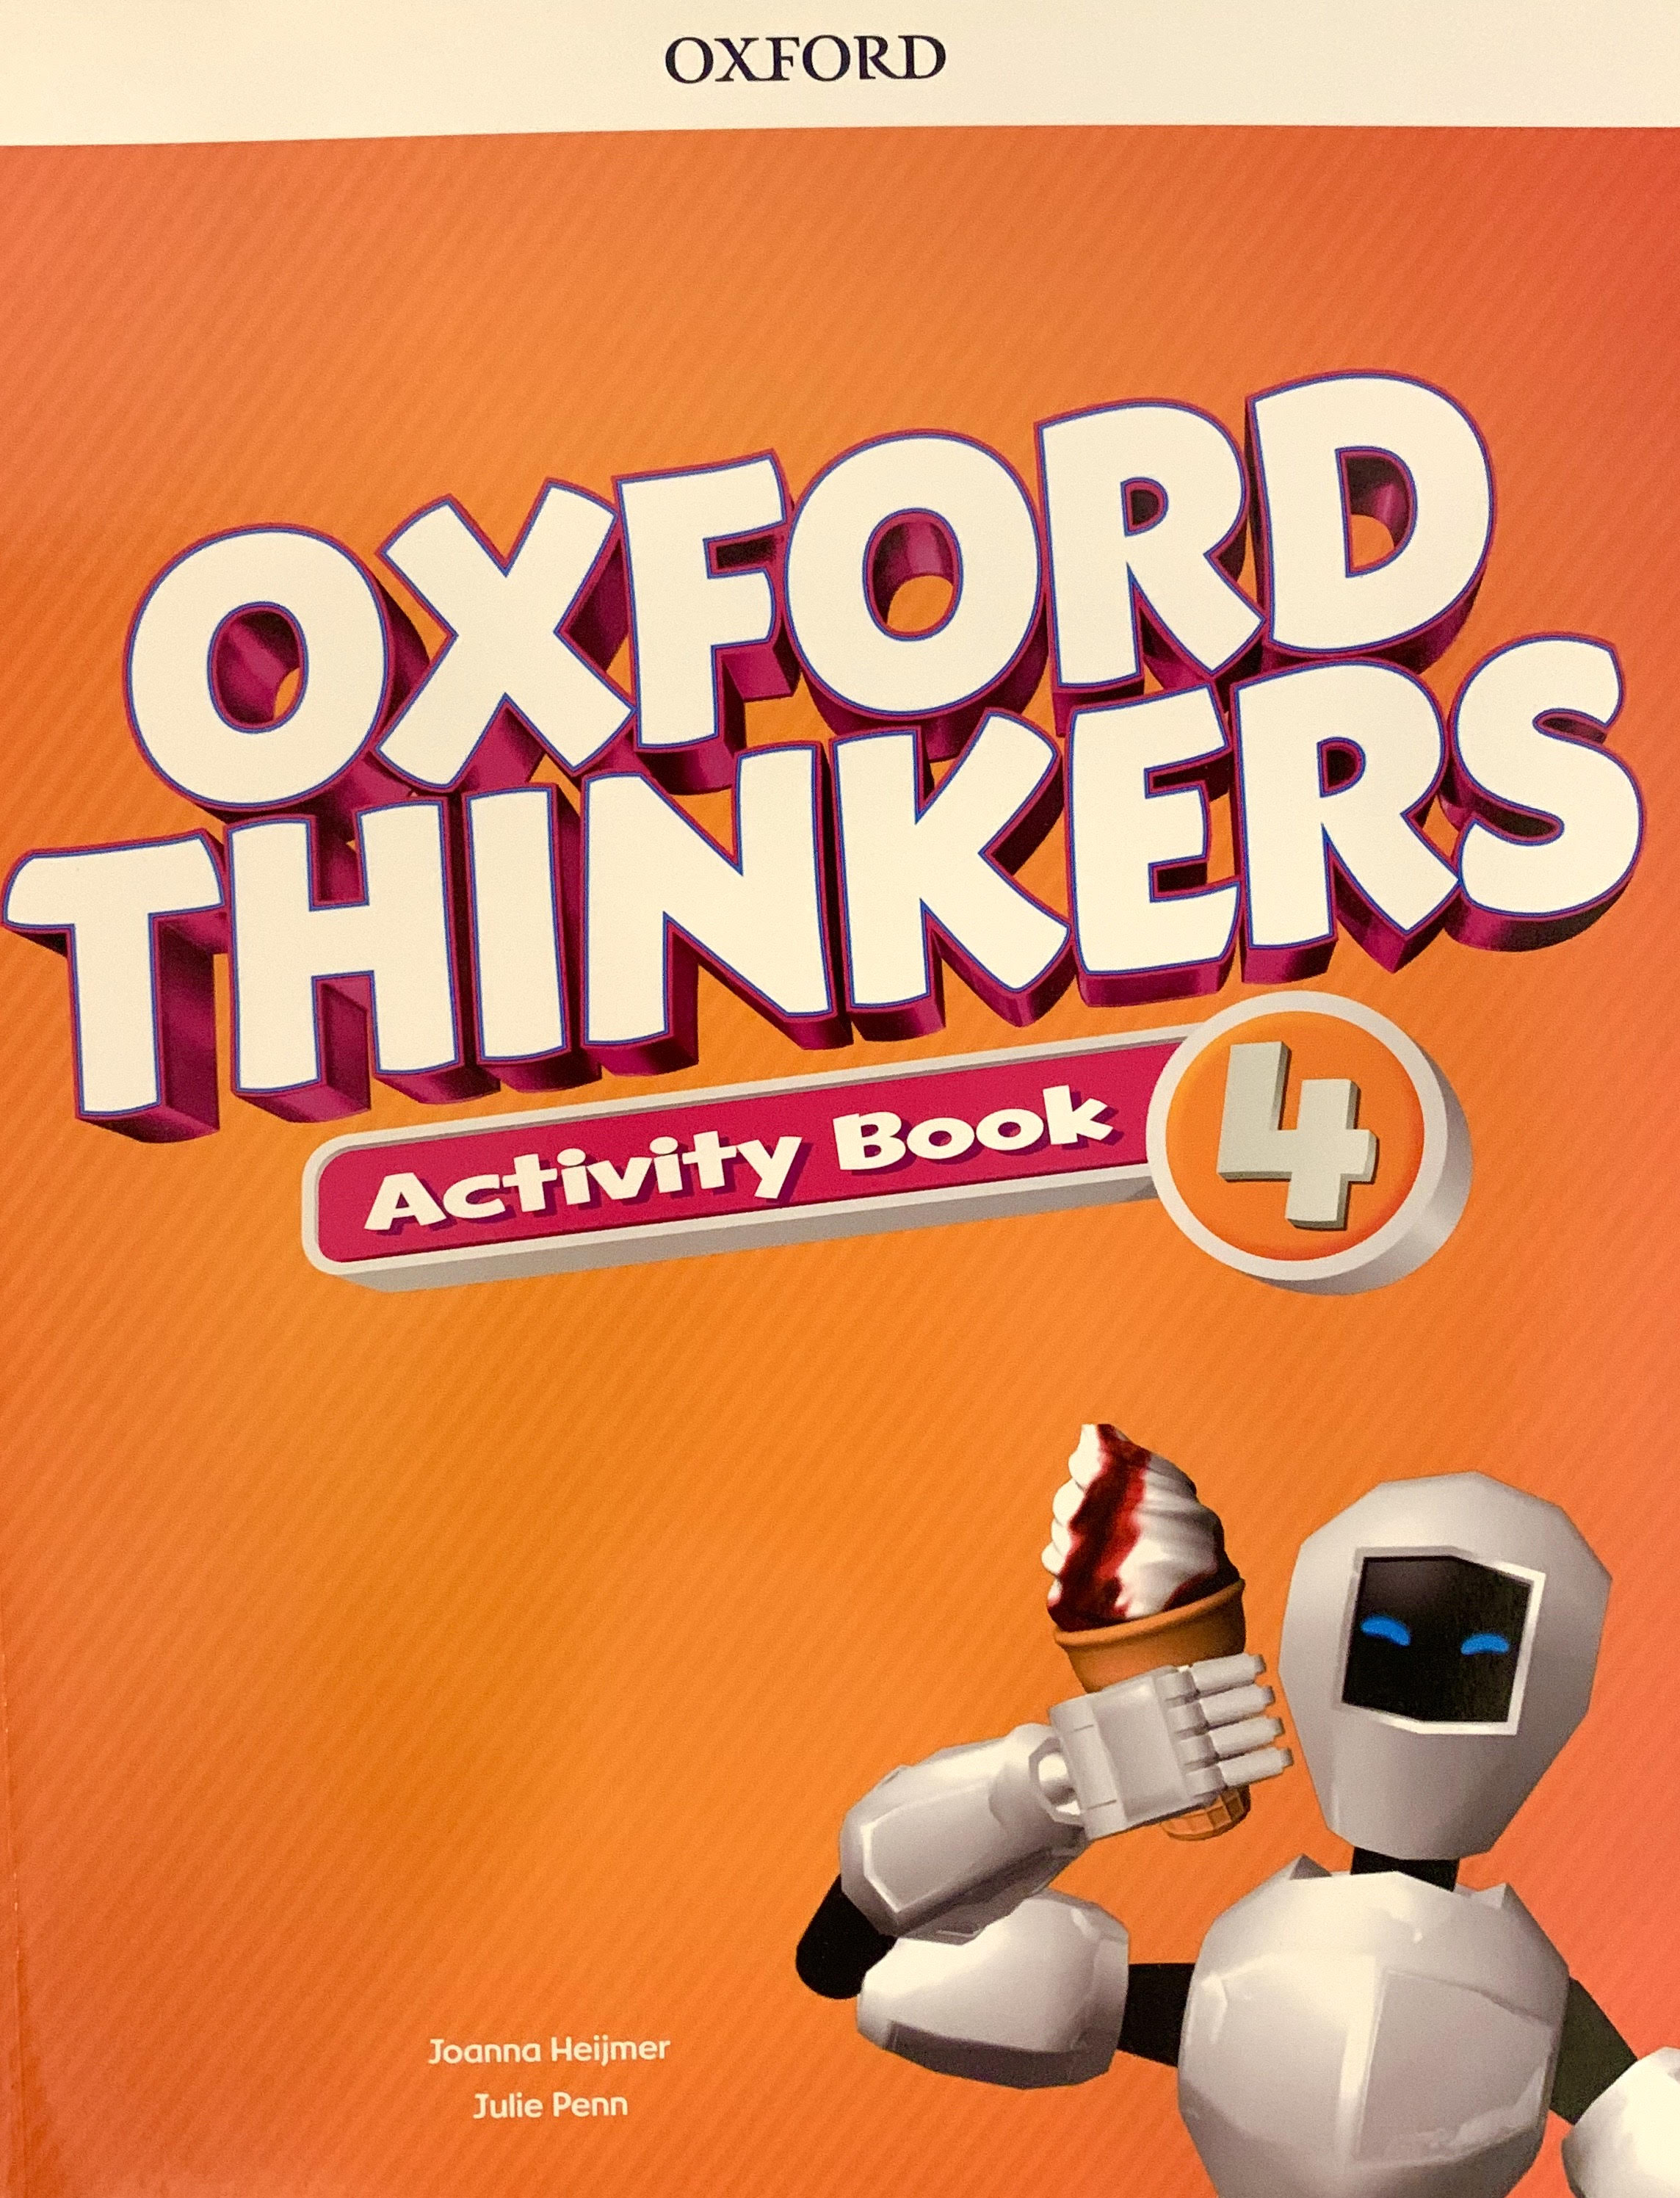 Oxford Thinkers Activity 4